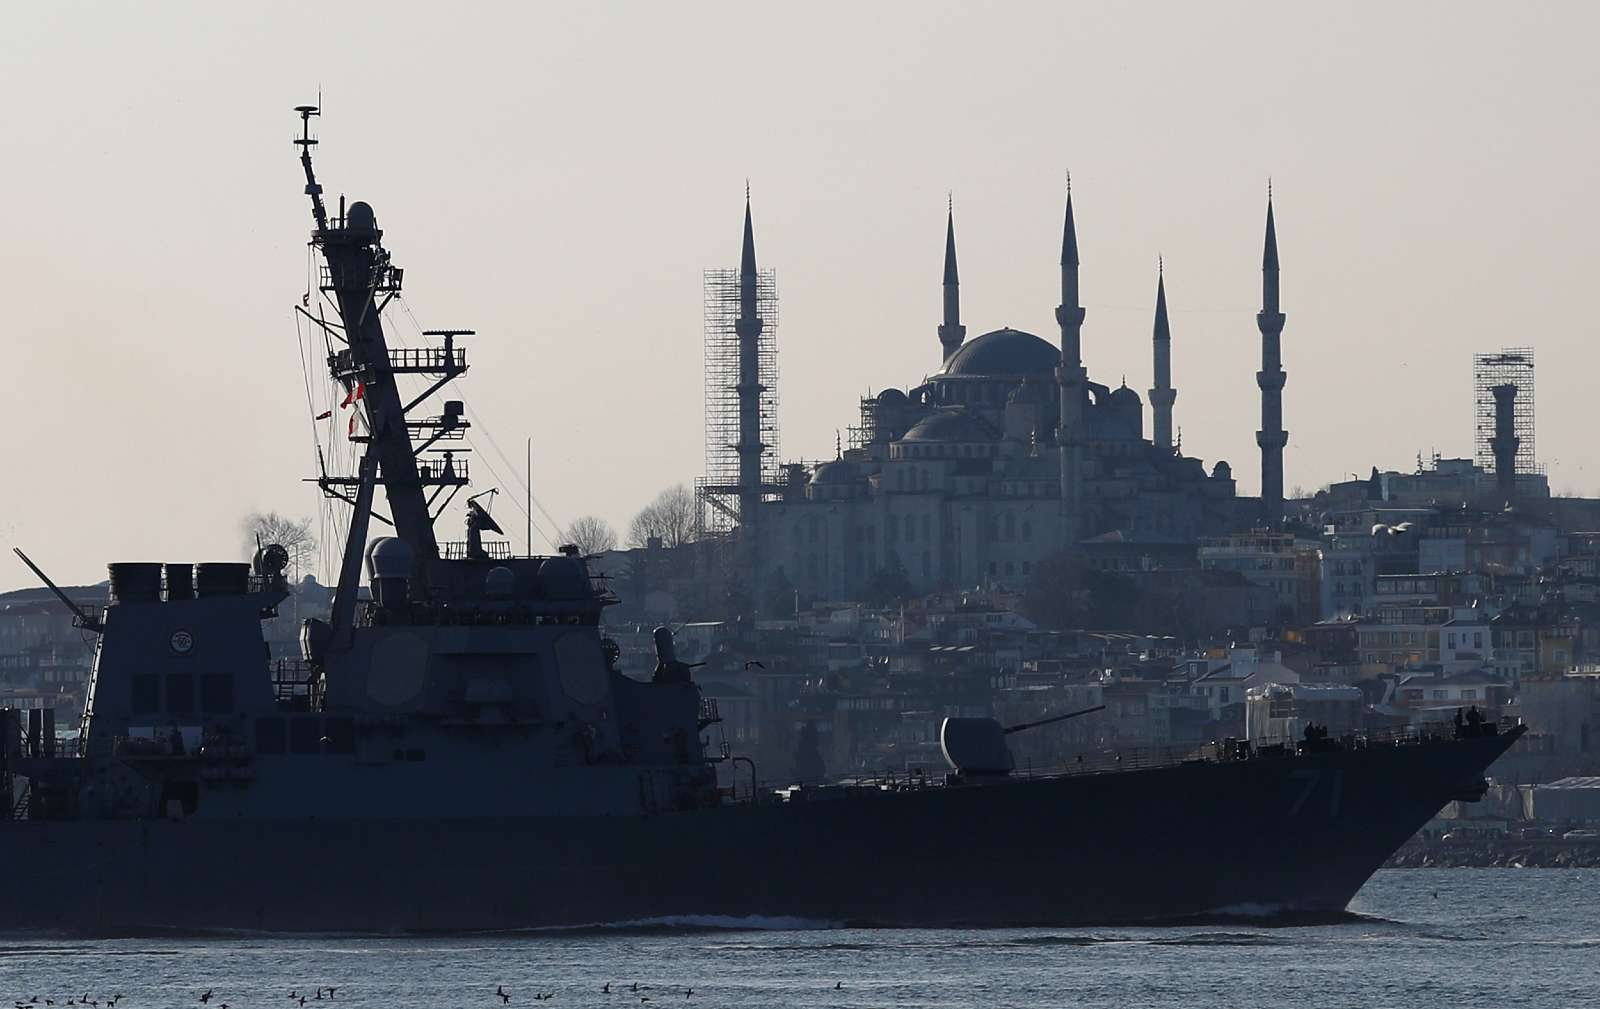 U.S. Navy guided-missile destroyer USS Ross, with the Blue mosque in the background, sails in the Bosphorus, on its way to the Black Sea, in Istanbul, Turkey, February 23, 2020. REUTERS/Murad Sezer